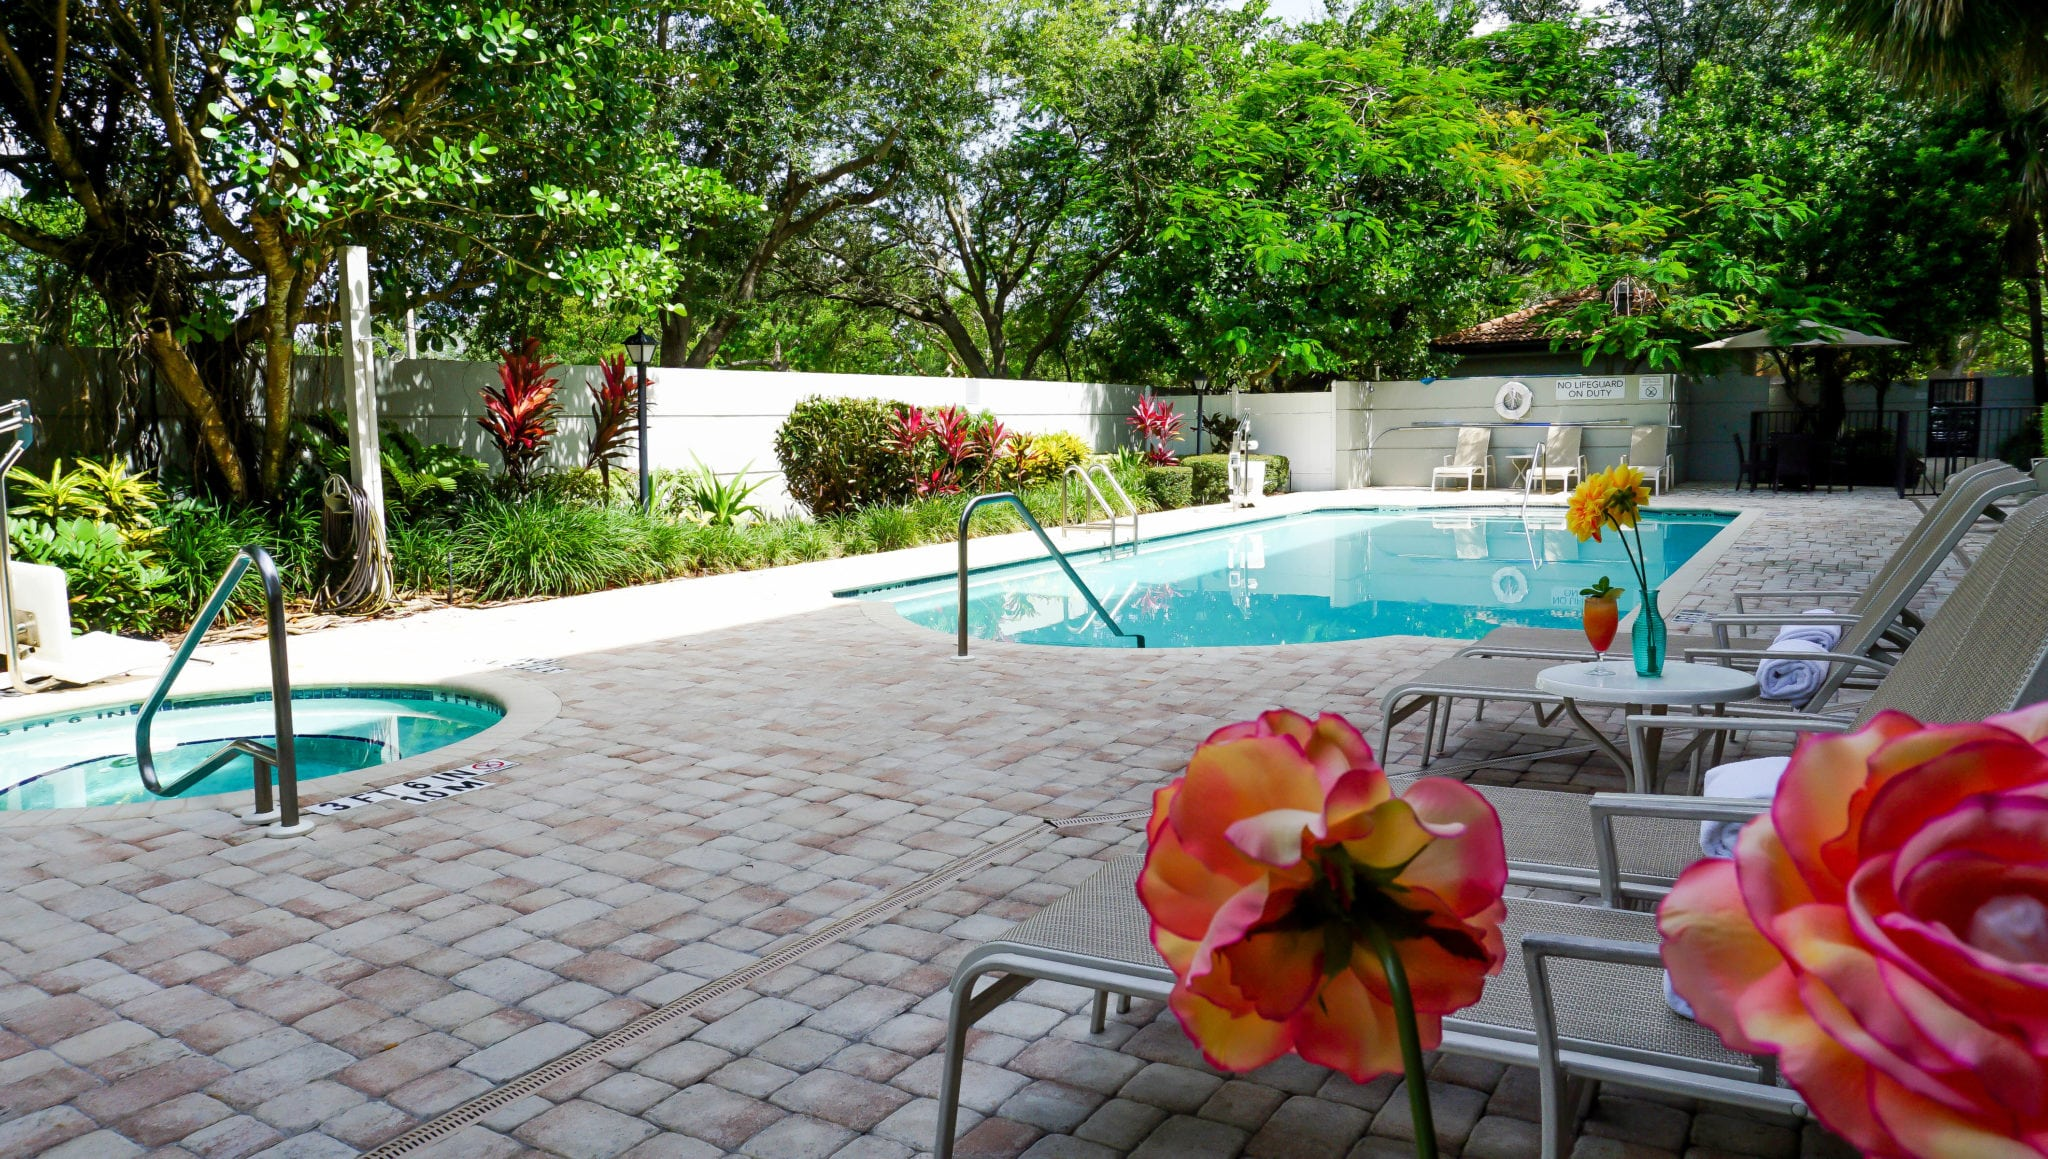 15 Reasons To Stay At The Courtyard Fort Lauderdale Coral Springs